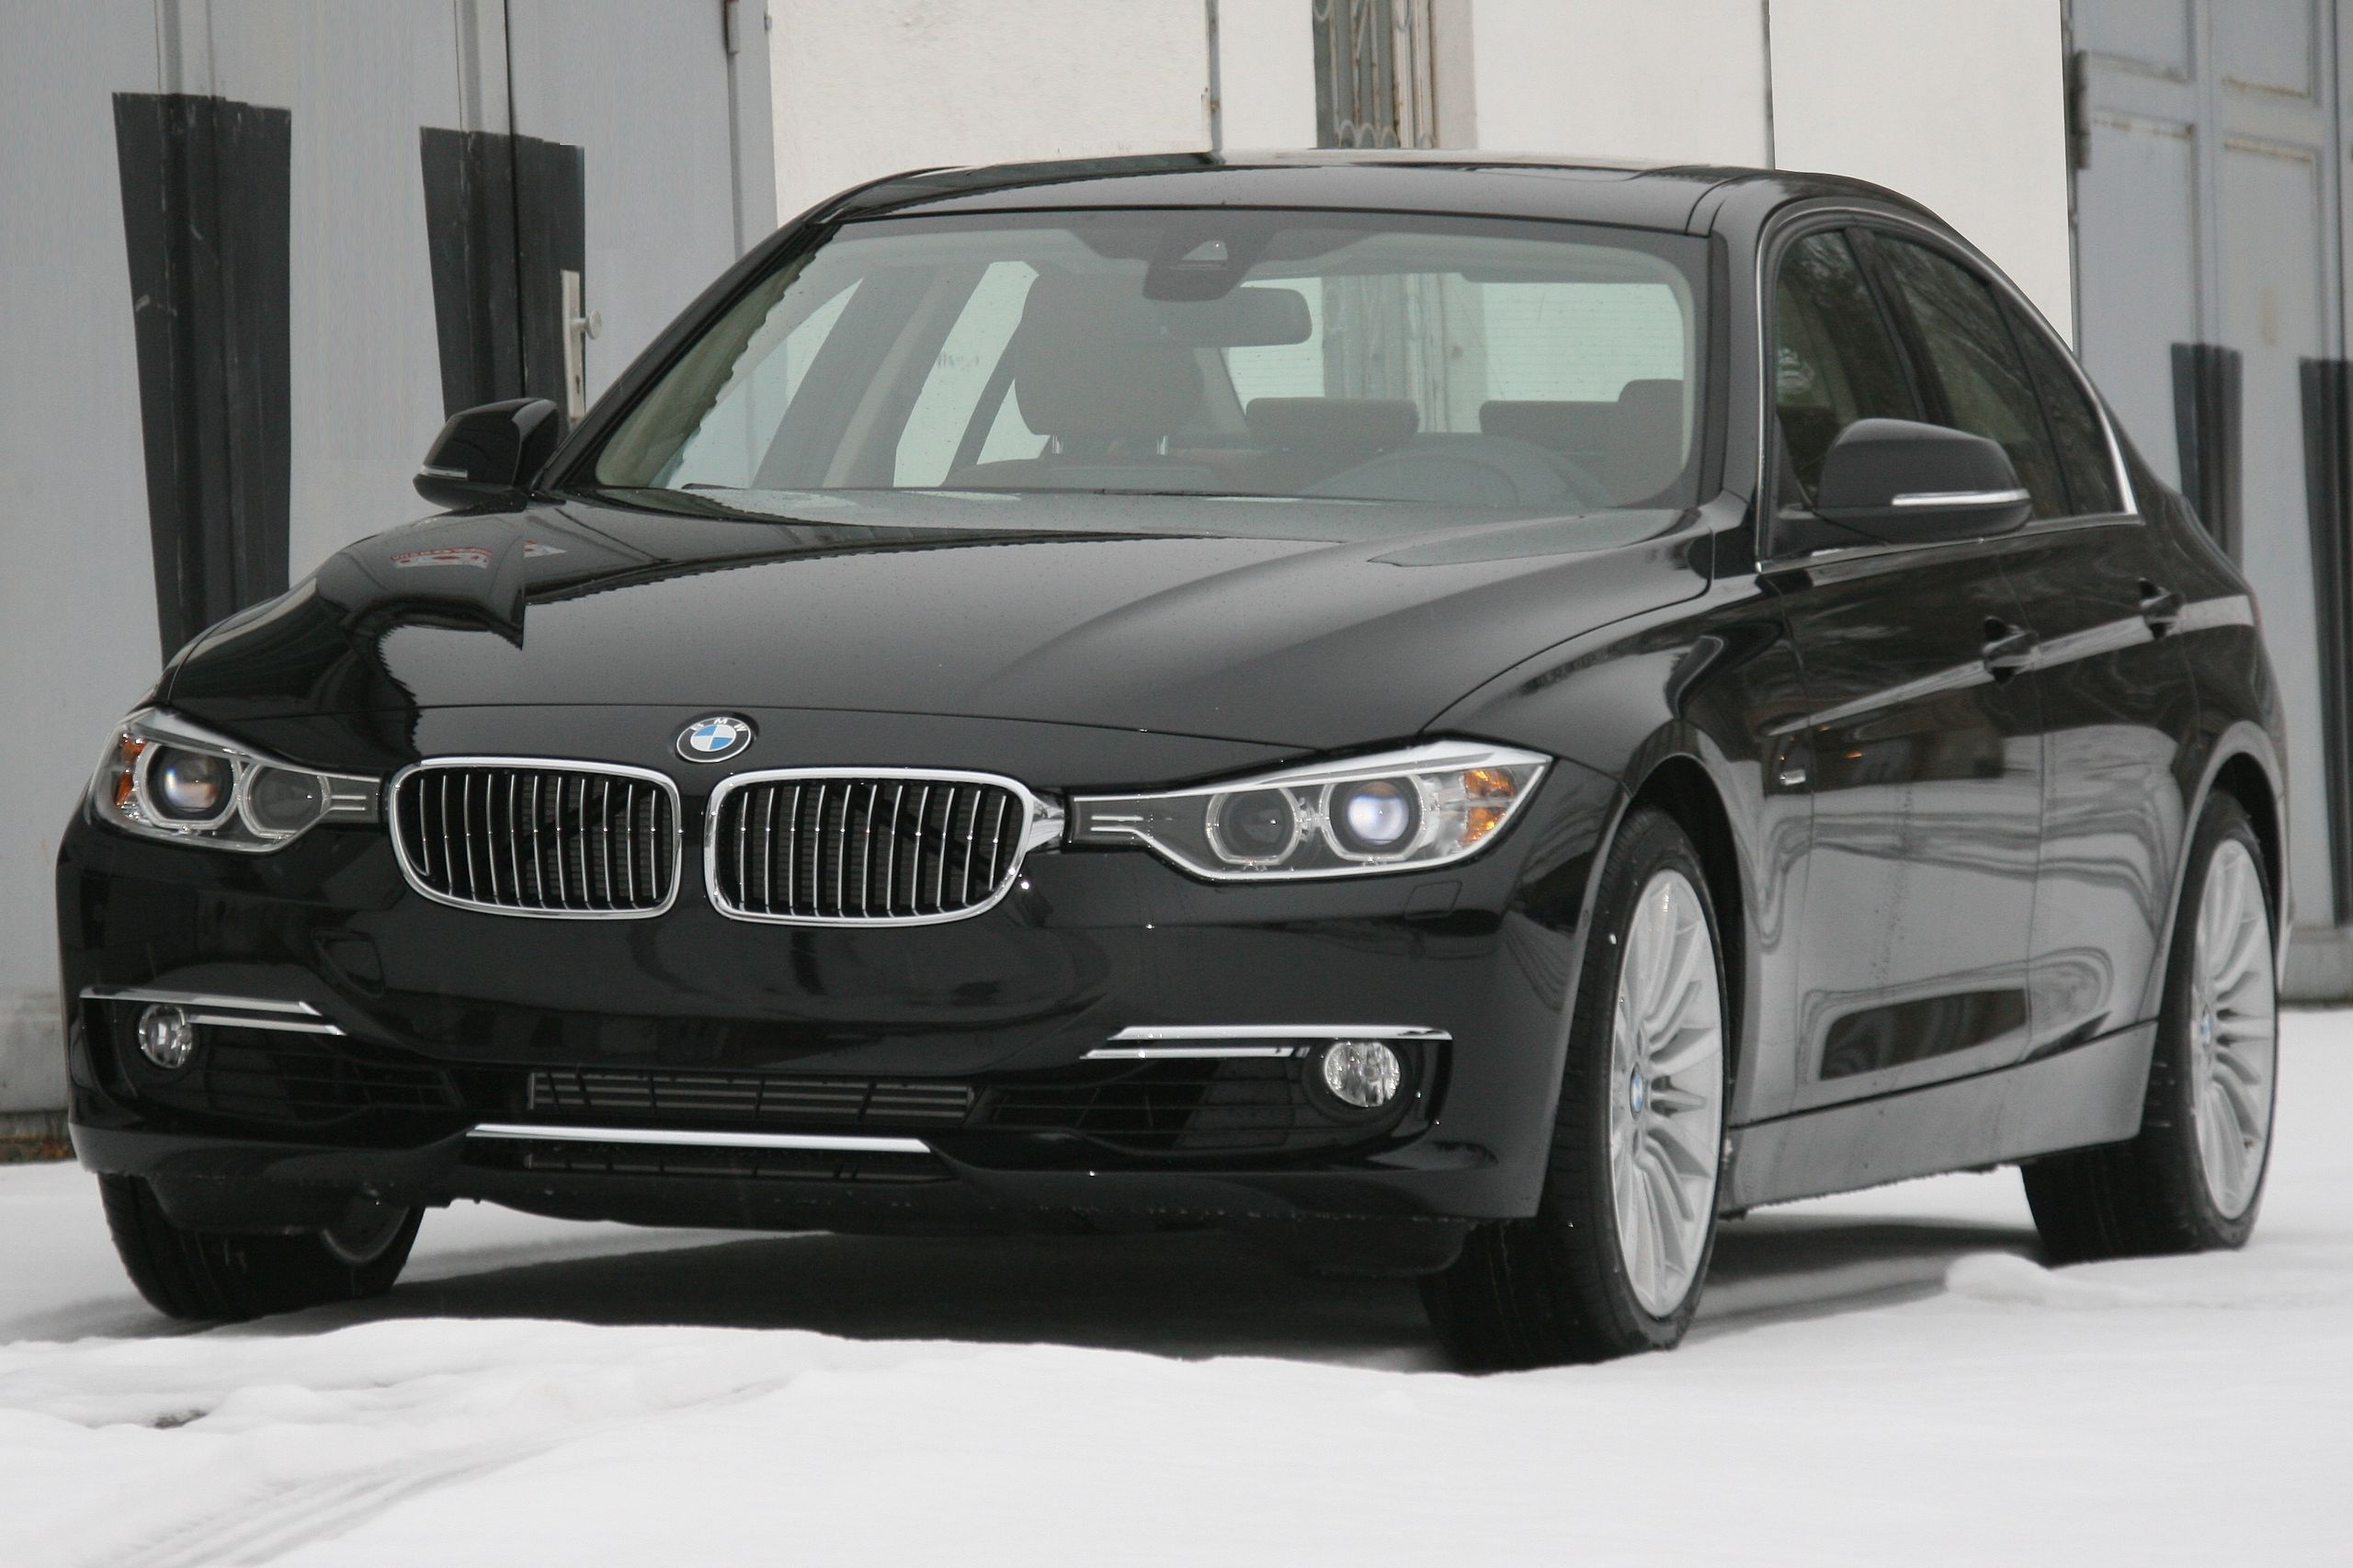 bmw htm sale for louis groves st near webster mo in vin used manchester clayton kirkwood